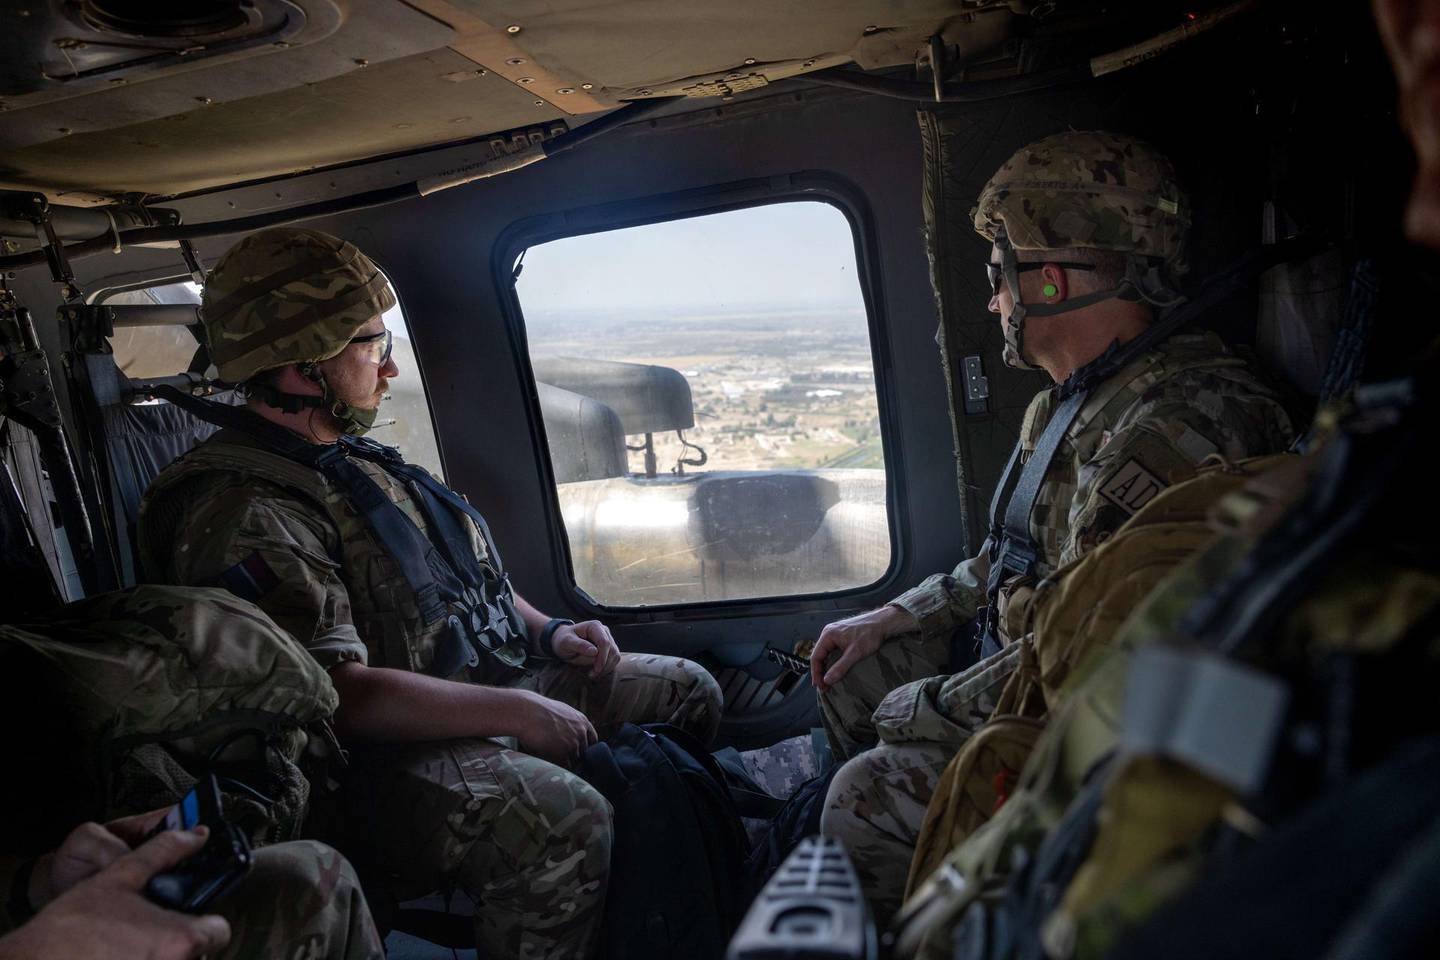 BAGHDAD, IRAQ - MAY 31: Coalition soldiers fly to Baghdad International Airport from the International Zone in a U.S. Blackhawk helicopter on May 31, 2021 in Baghdad, Iraq. Coalition forces based in Baghdad's International Zone are part of the U.S.-led Military Advisor Group of 13 nations supporting the Iraqi Security Forces.   John Moore/Getty Images/AFP == FOR NEWSPAPERS, INTERNET, TELCOS & TELEVISION USE ONLY ==